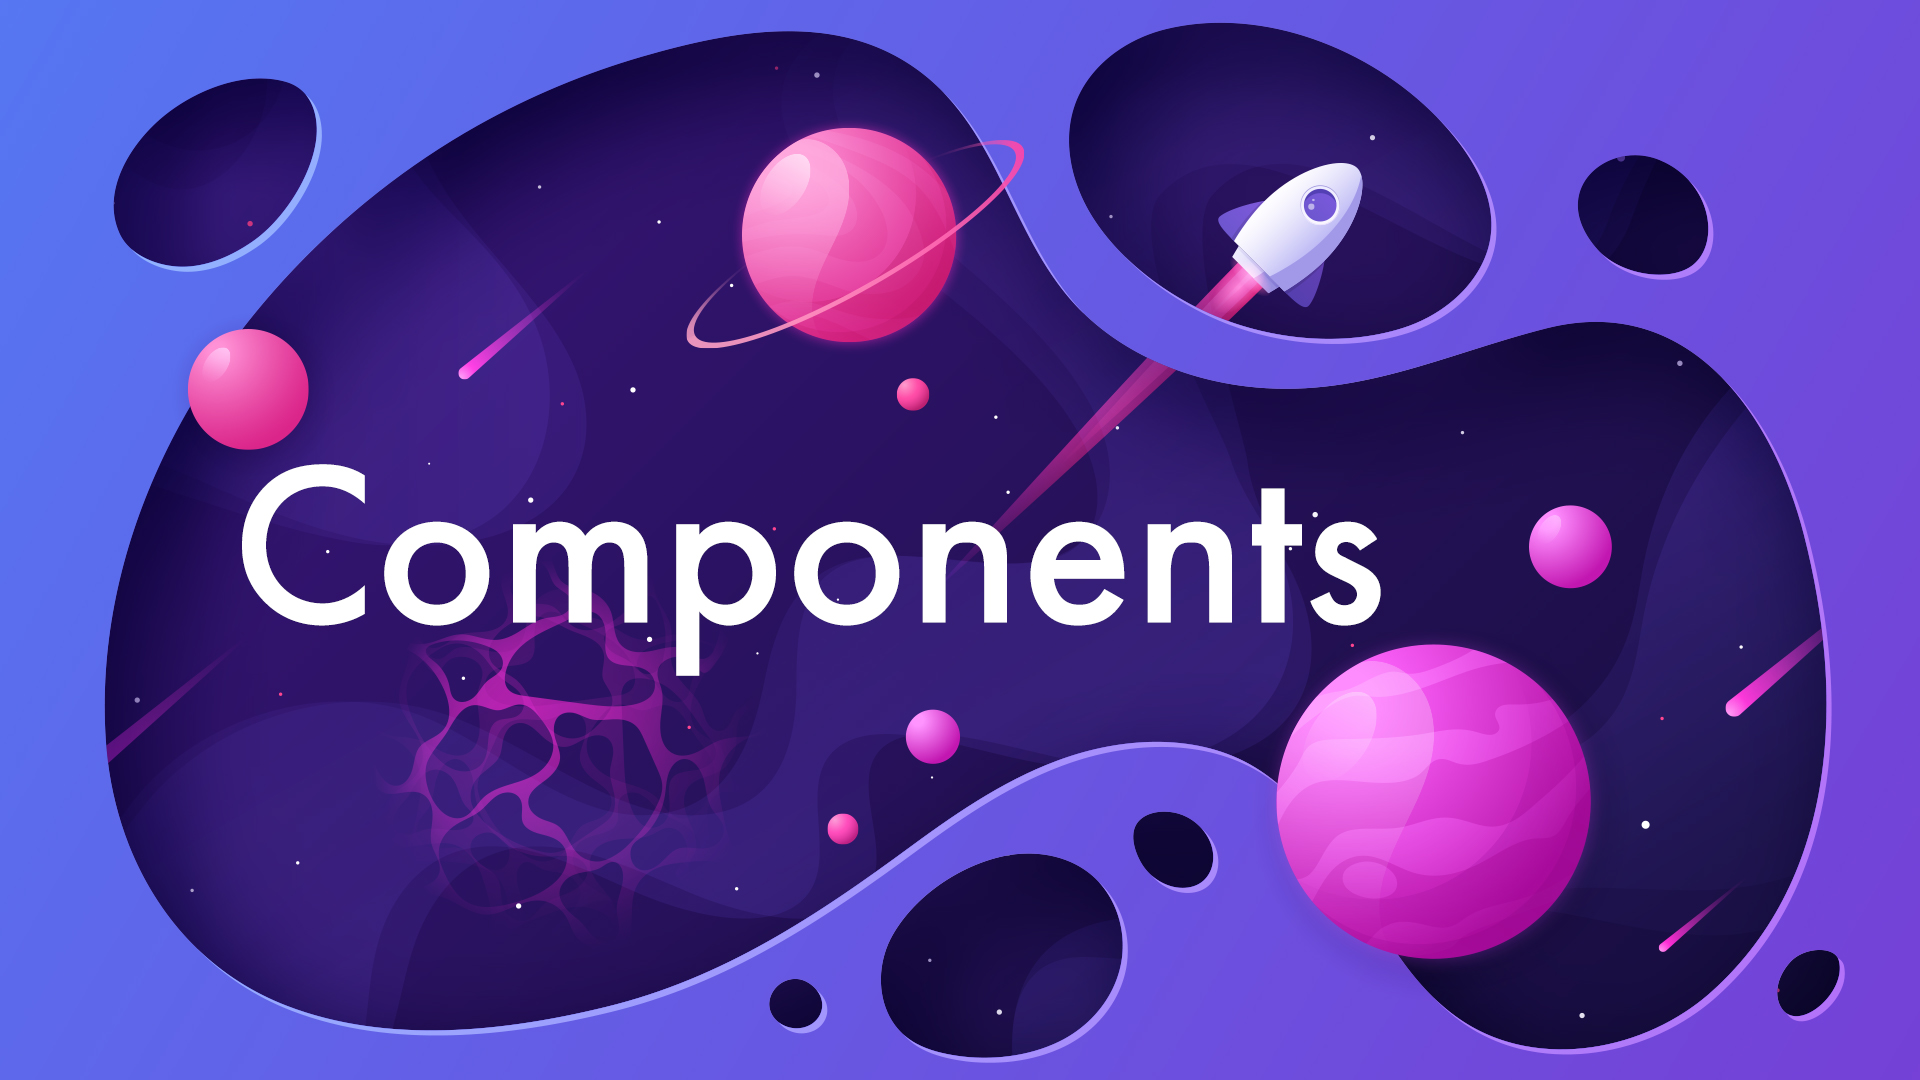 Components_video.jpg